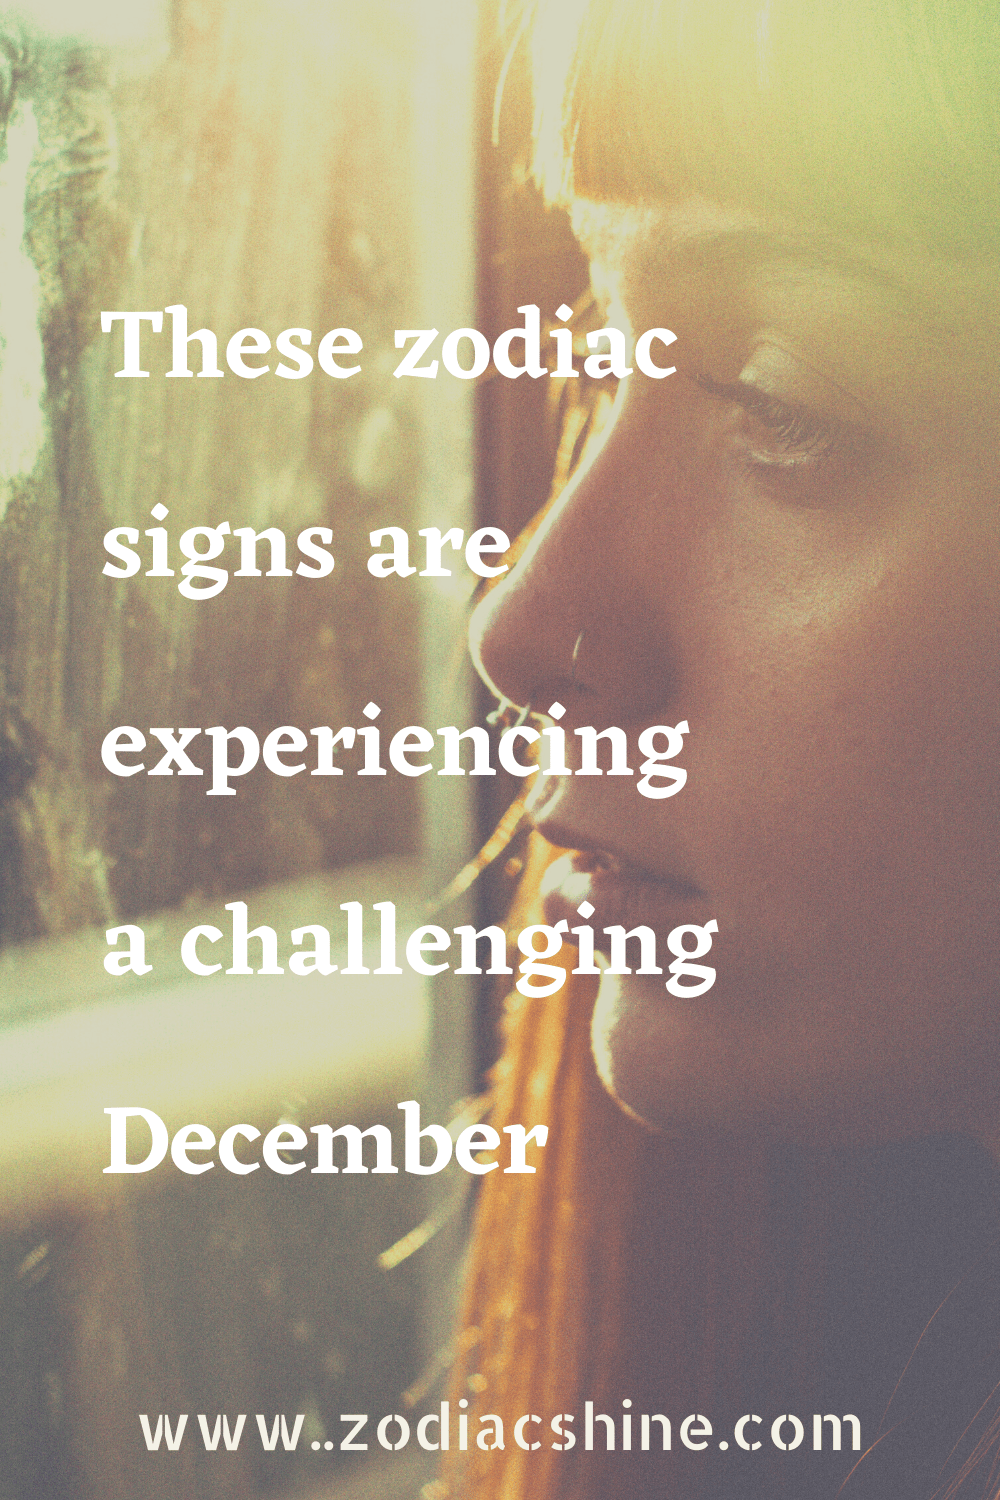 These zodiac signs are experiencing a challenging December